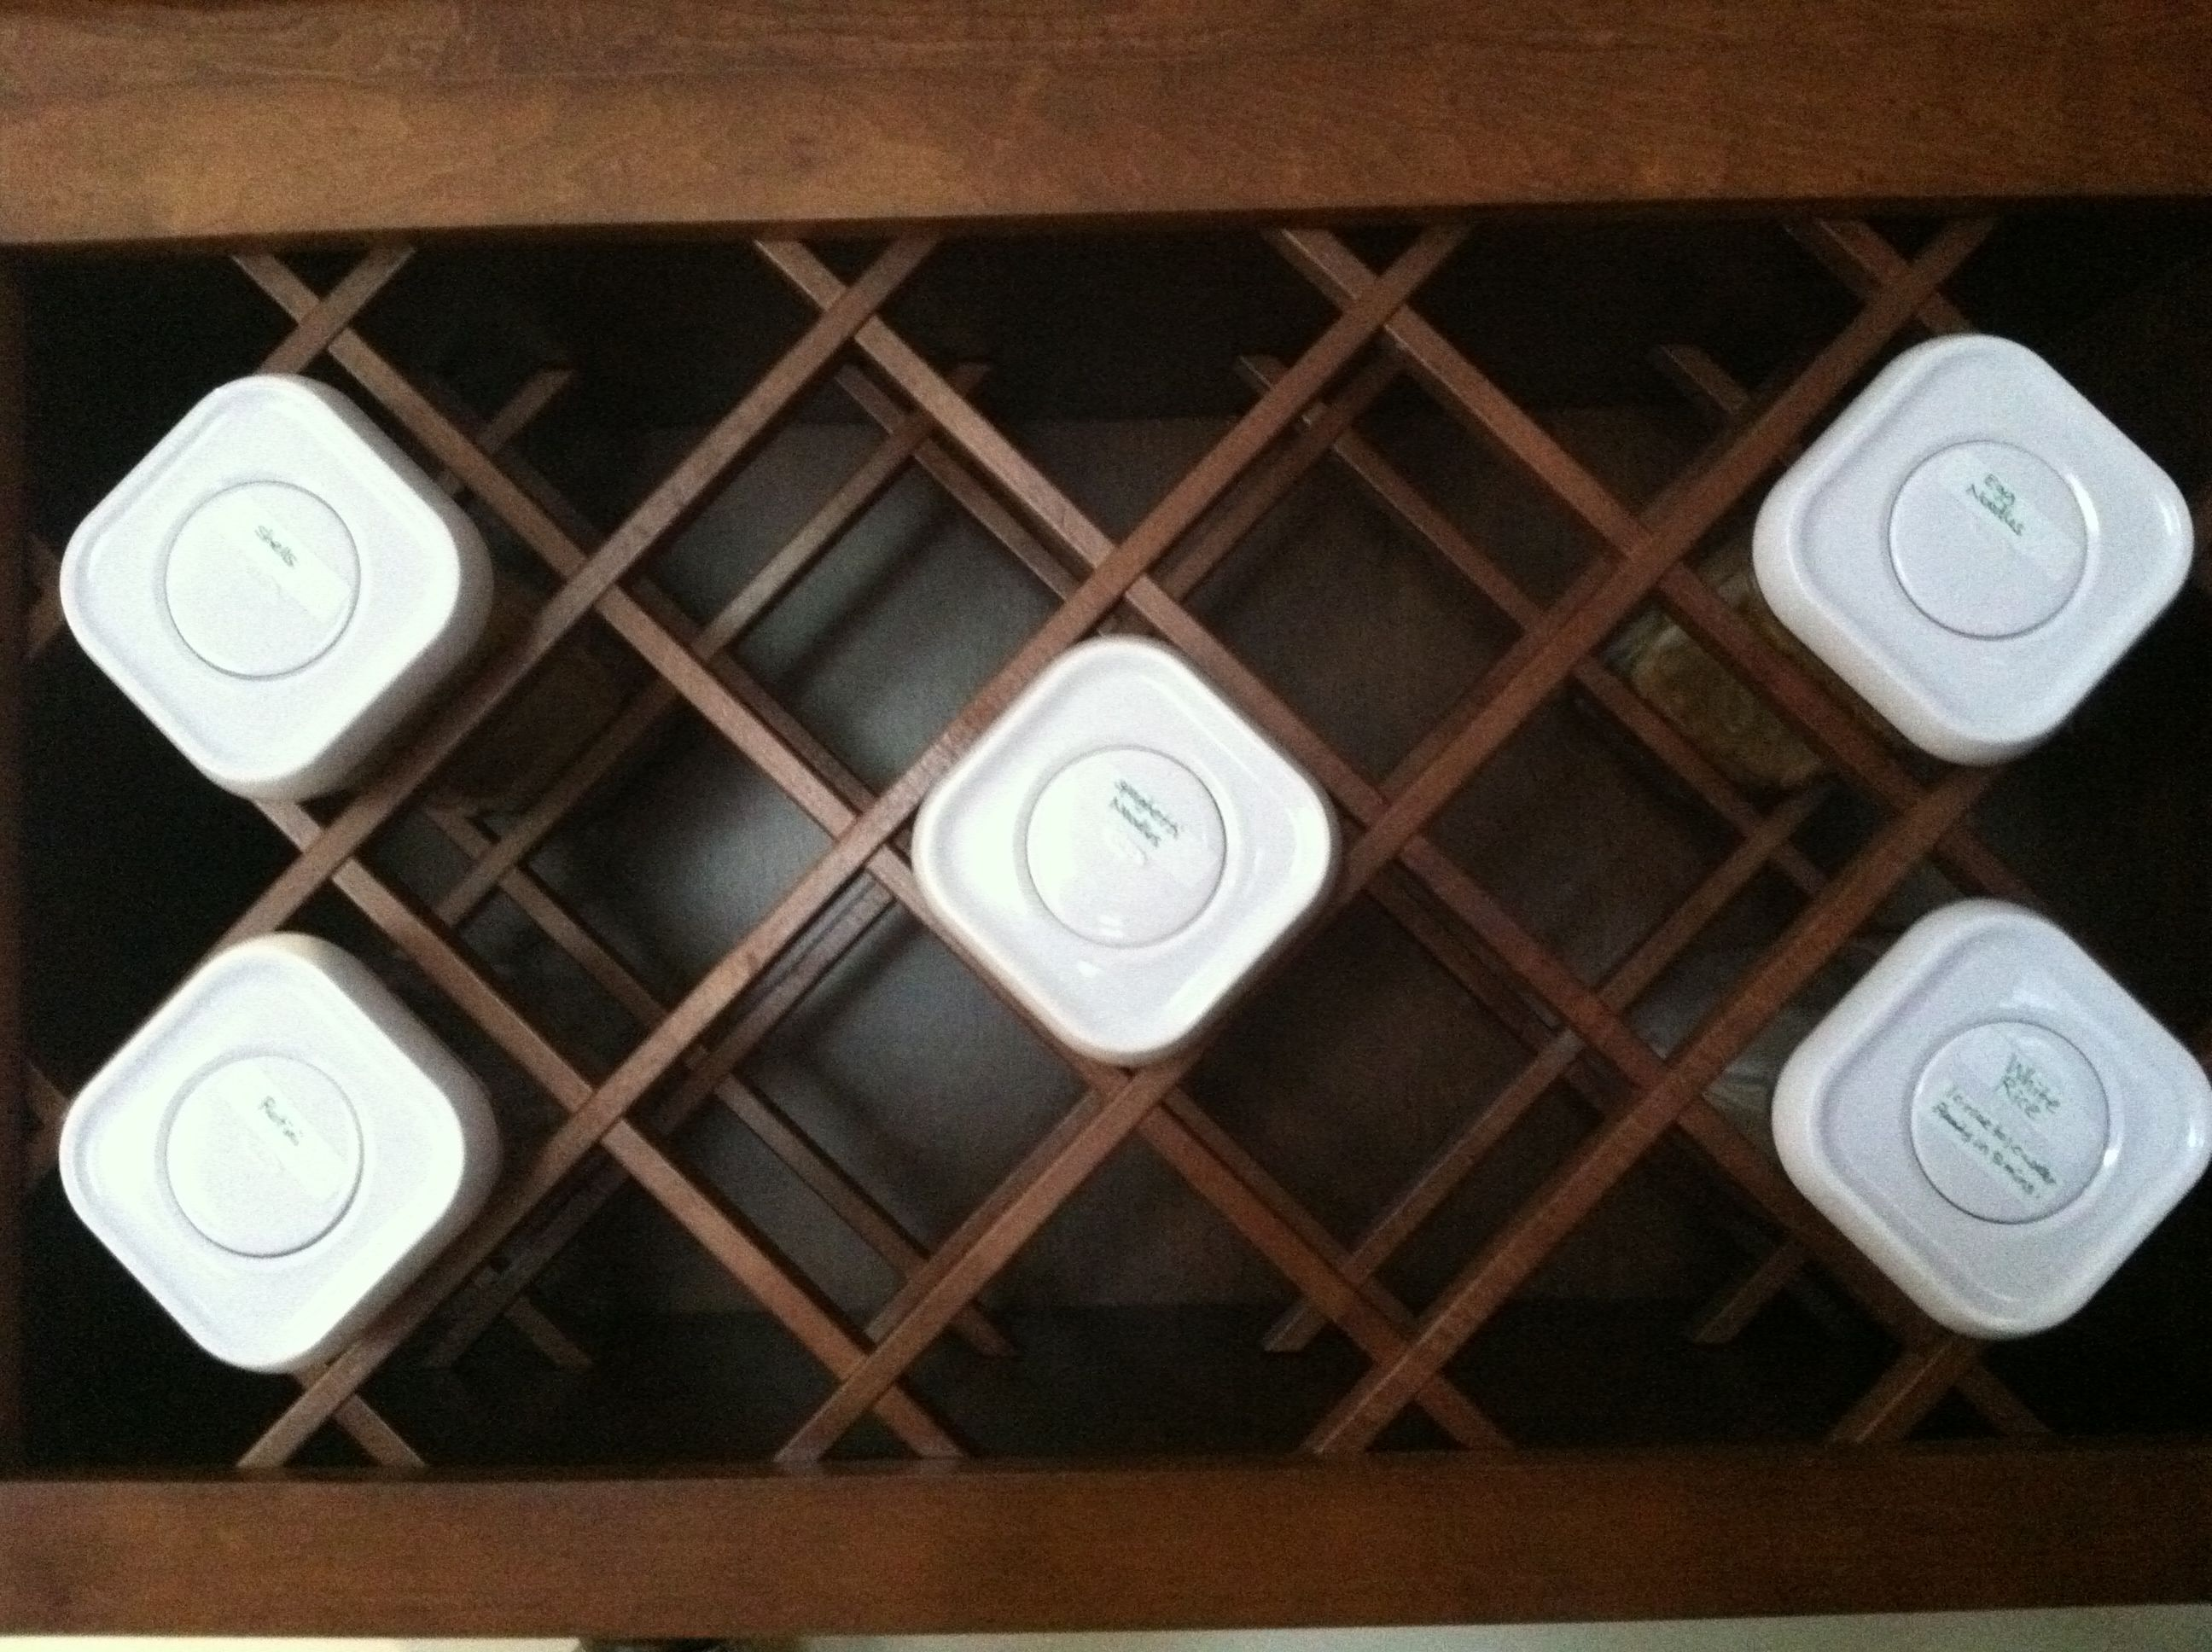 Pin by christi gillum on kitchen inspiration pinterest for Other uses for wine racks in kitchen